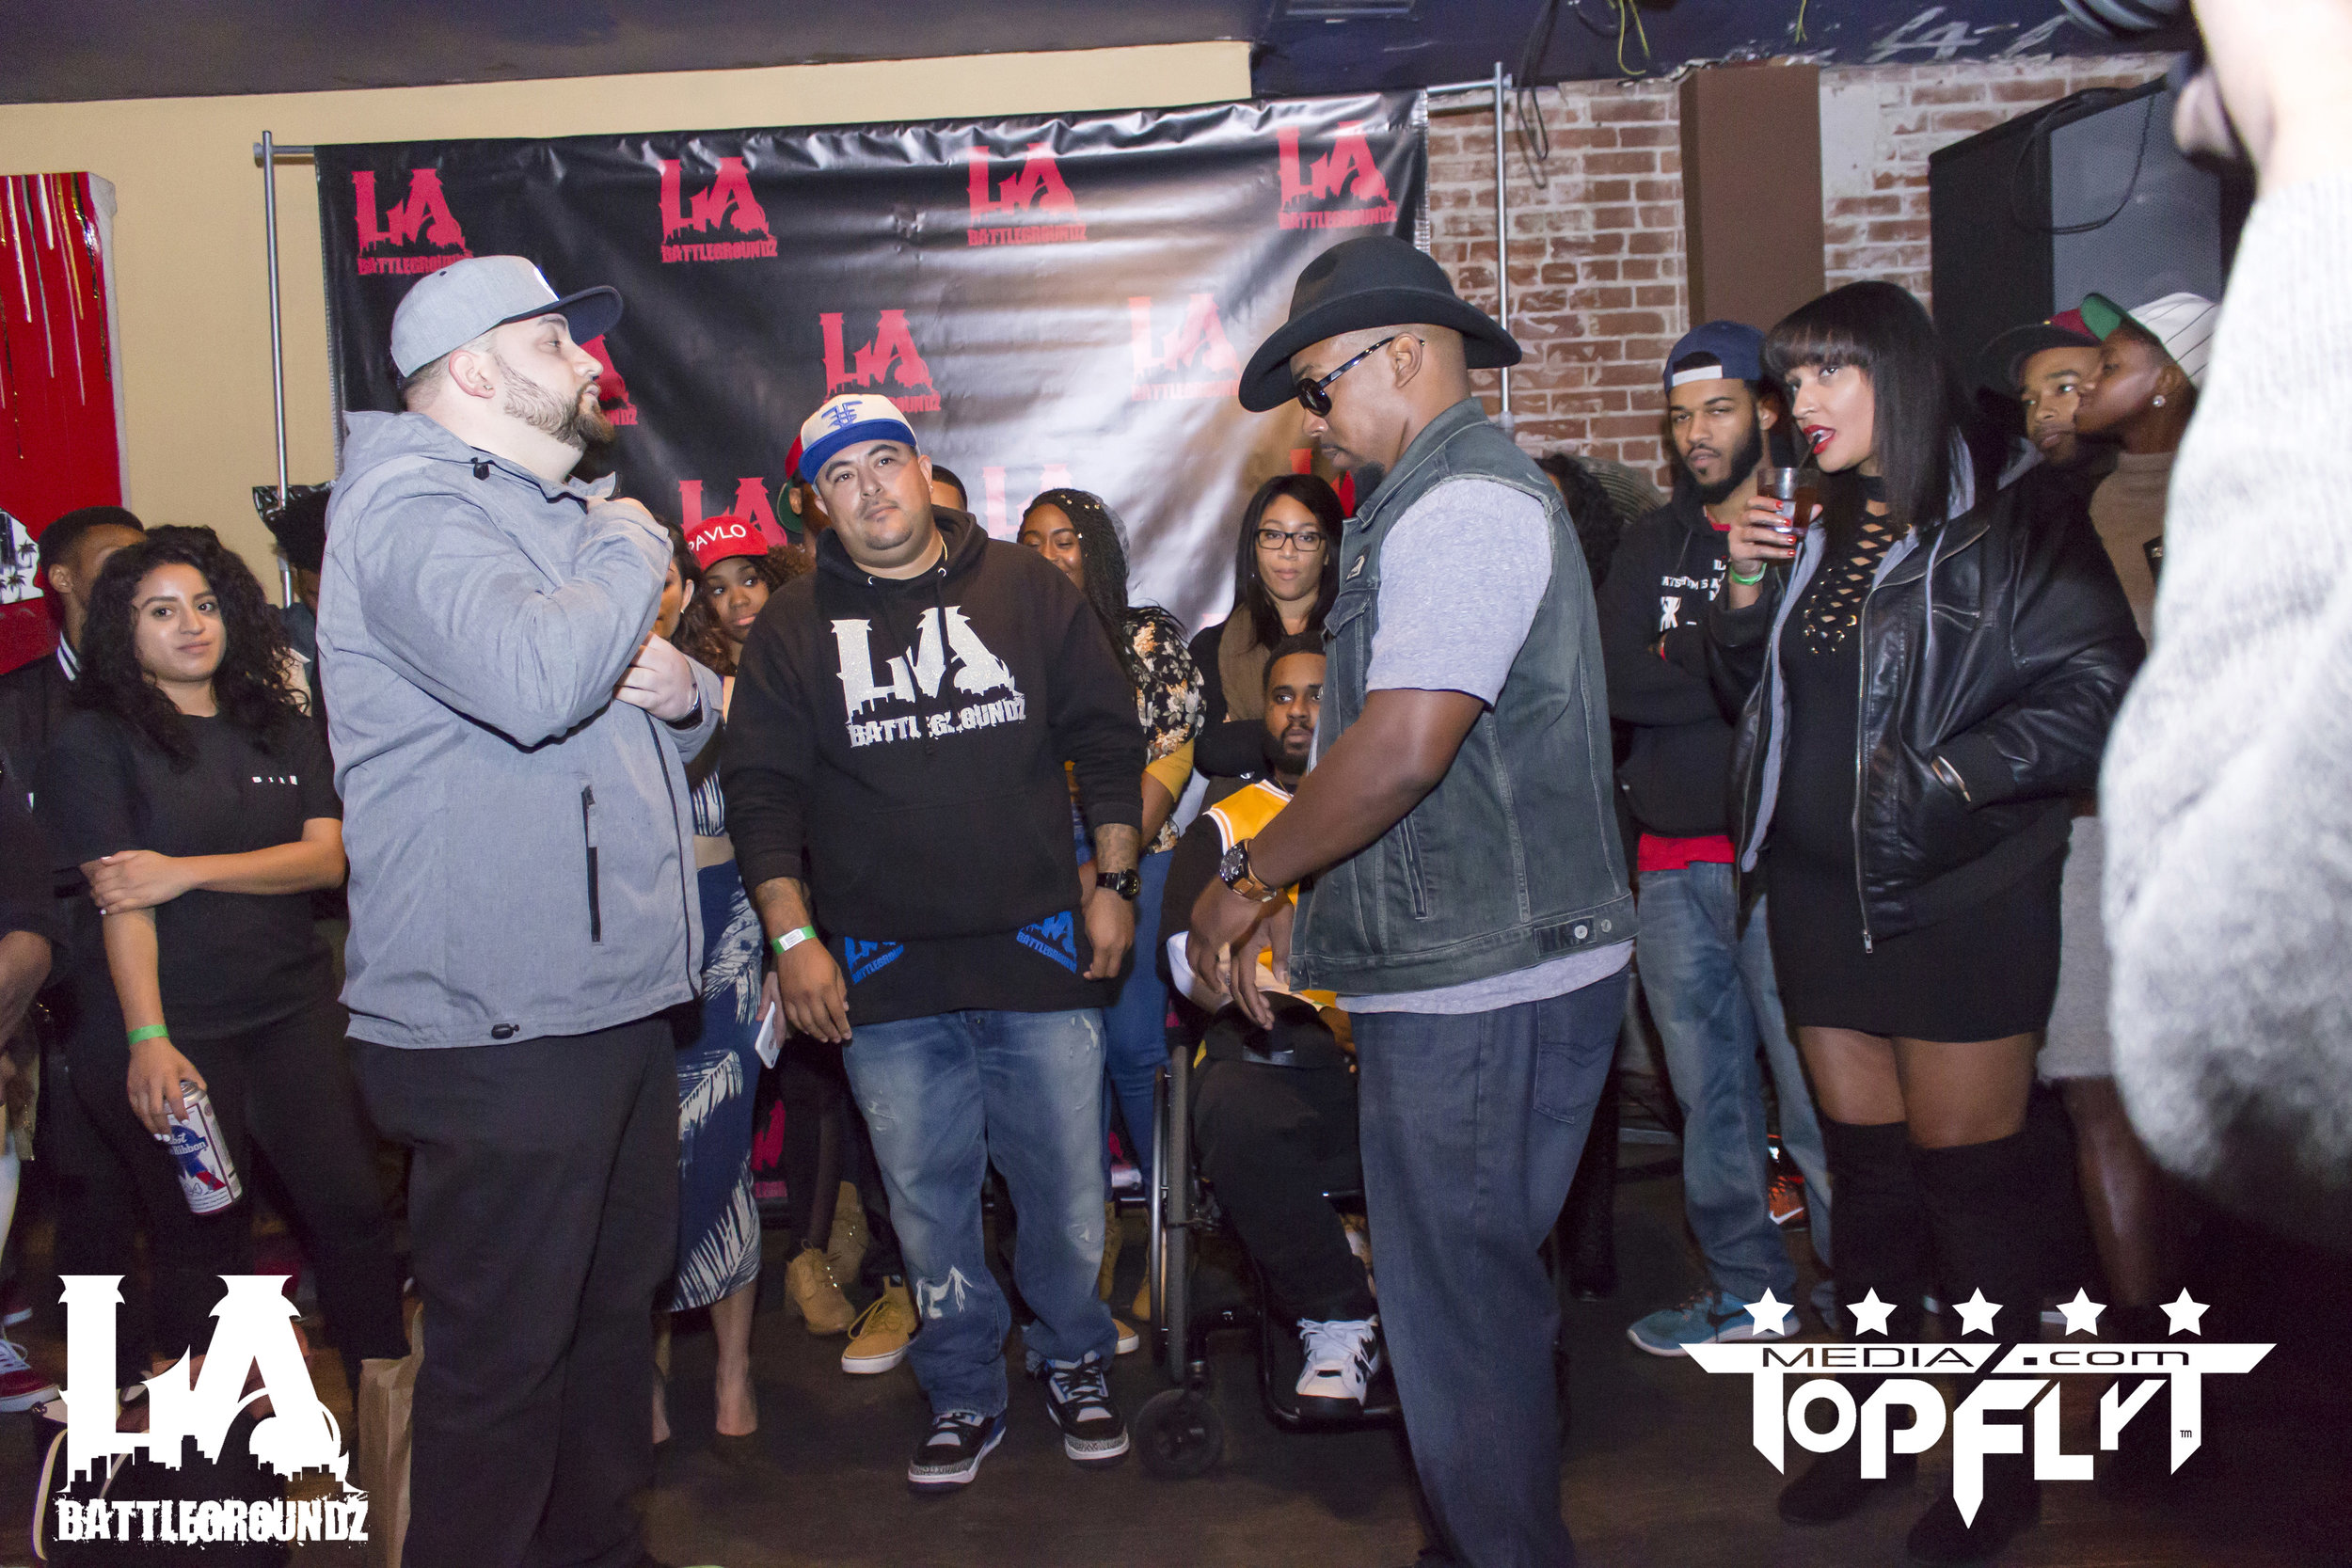 LA Battlegroundz - Decembarfest - The Christening_43.jpg